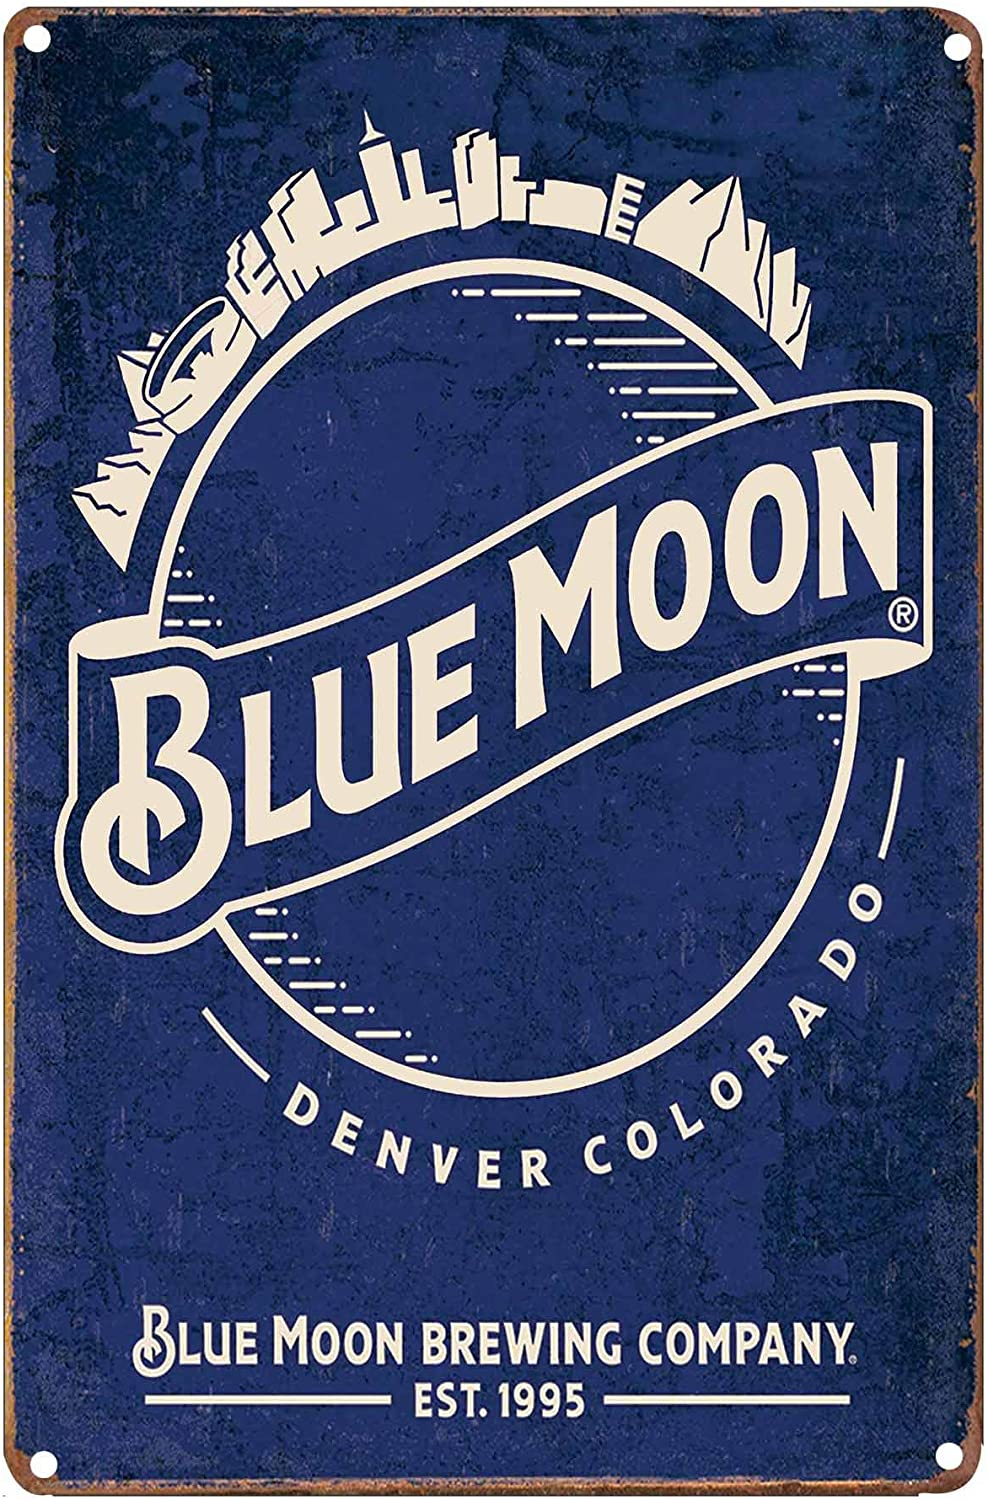 LIPTOR Blue Moon Denver Colorado Vintage Tin Sign Coffee Bar Wall Decor Art Poster Beer Signs for Man Caves 8X12Inch